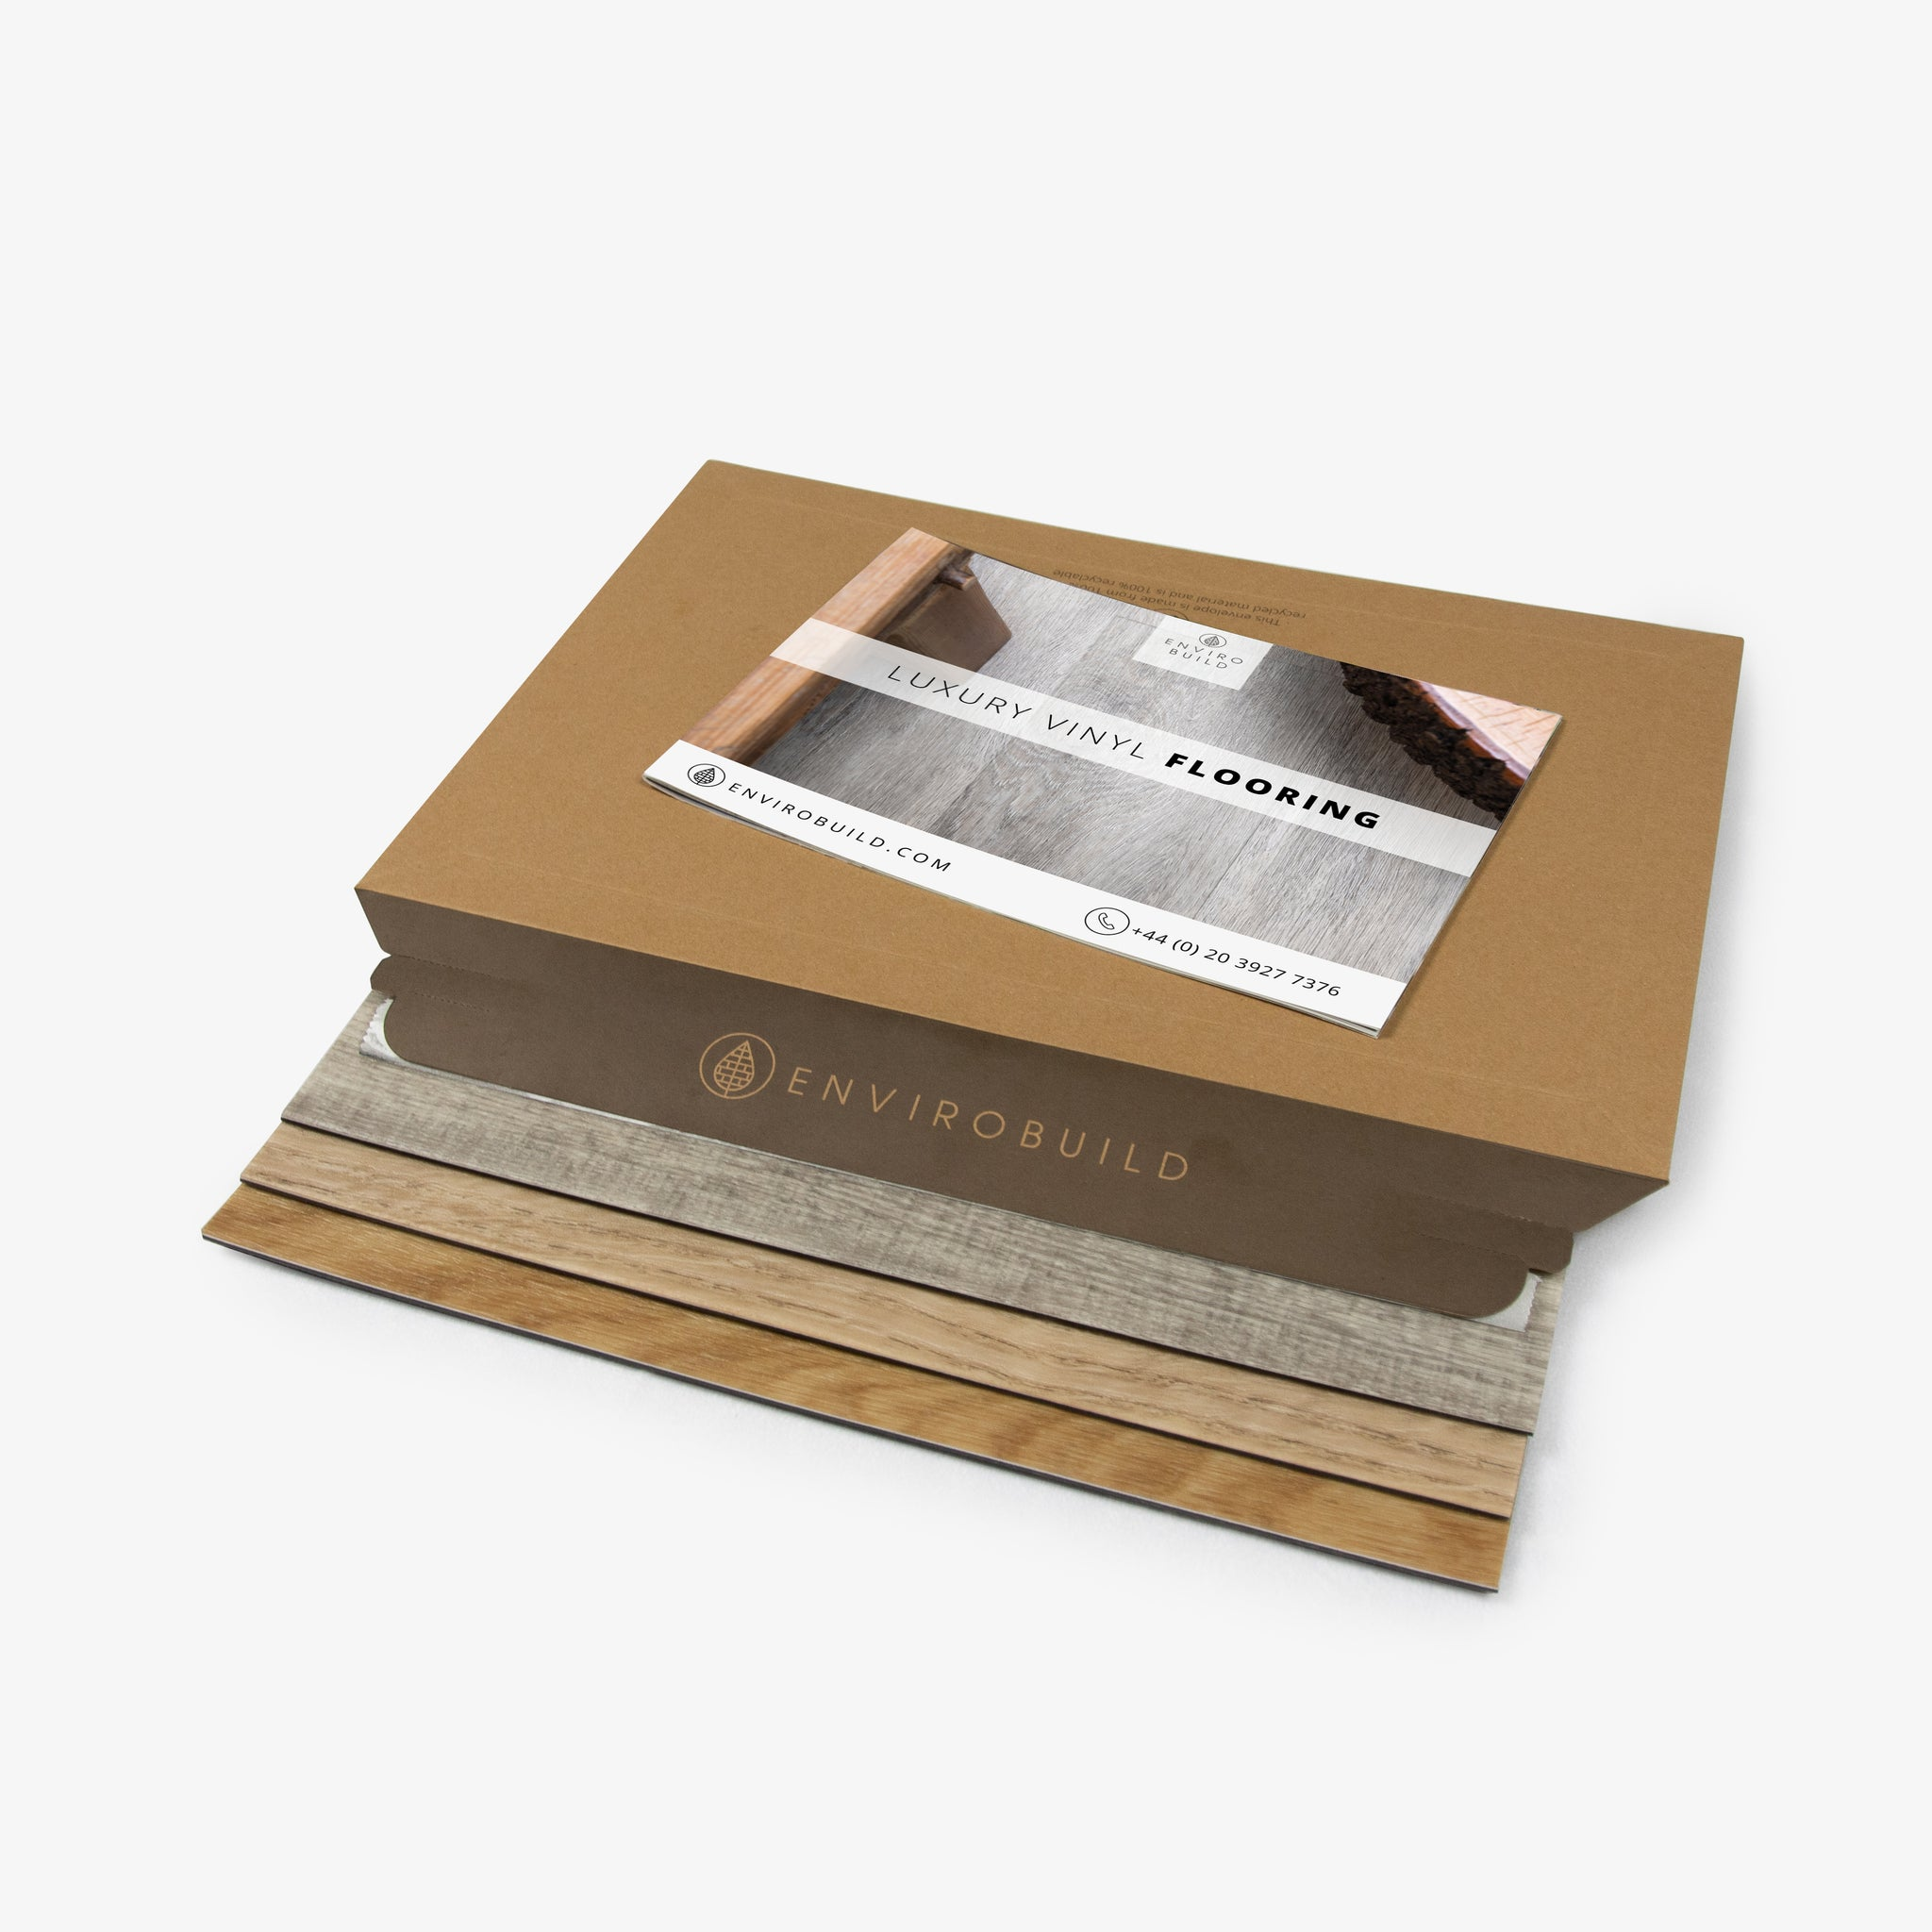 Sisu Vinyl | Sample Pack - Smoked Oak Dryback